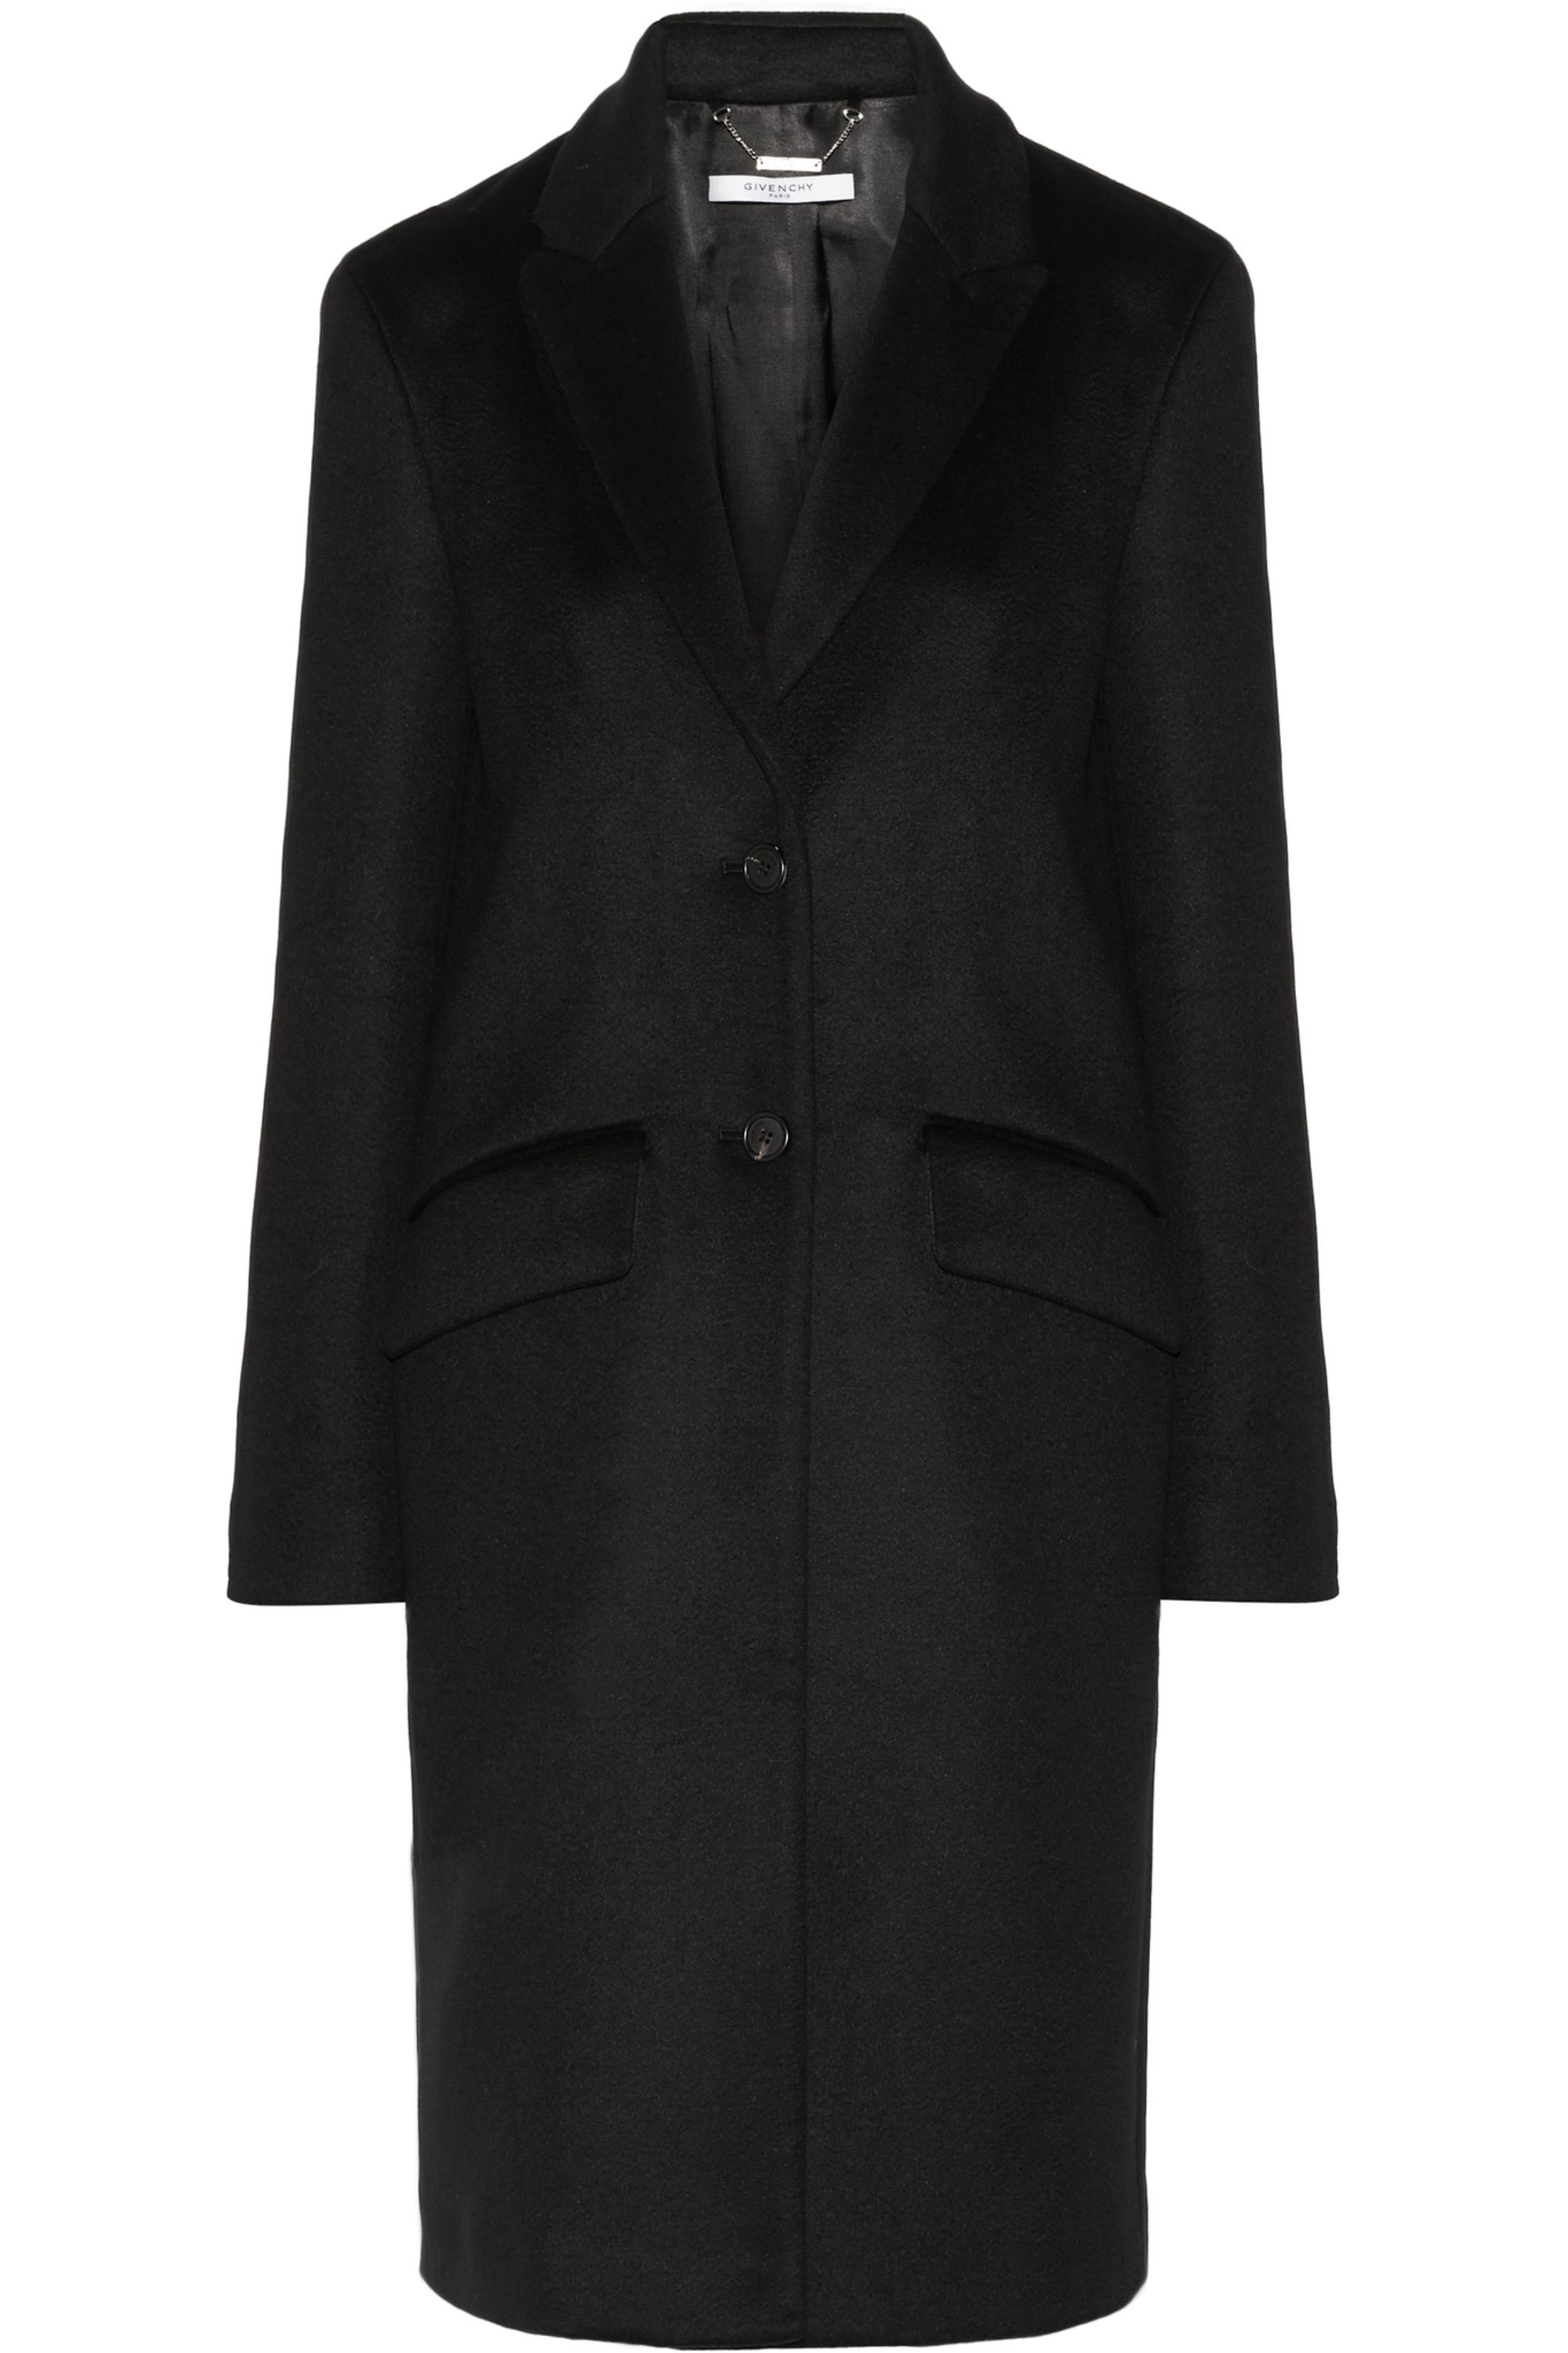 Givenchy Coat in black cashmere and wool-blend